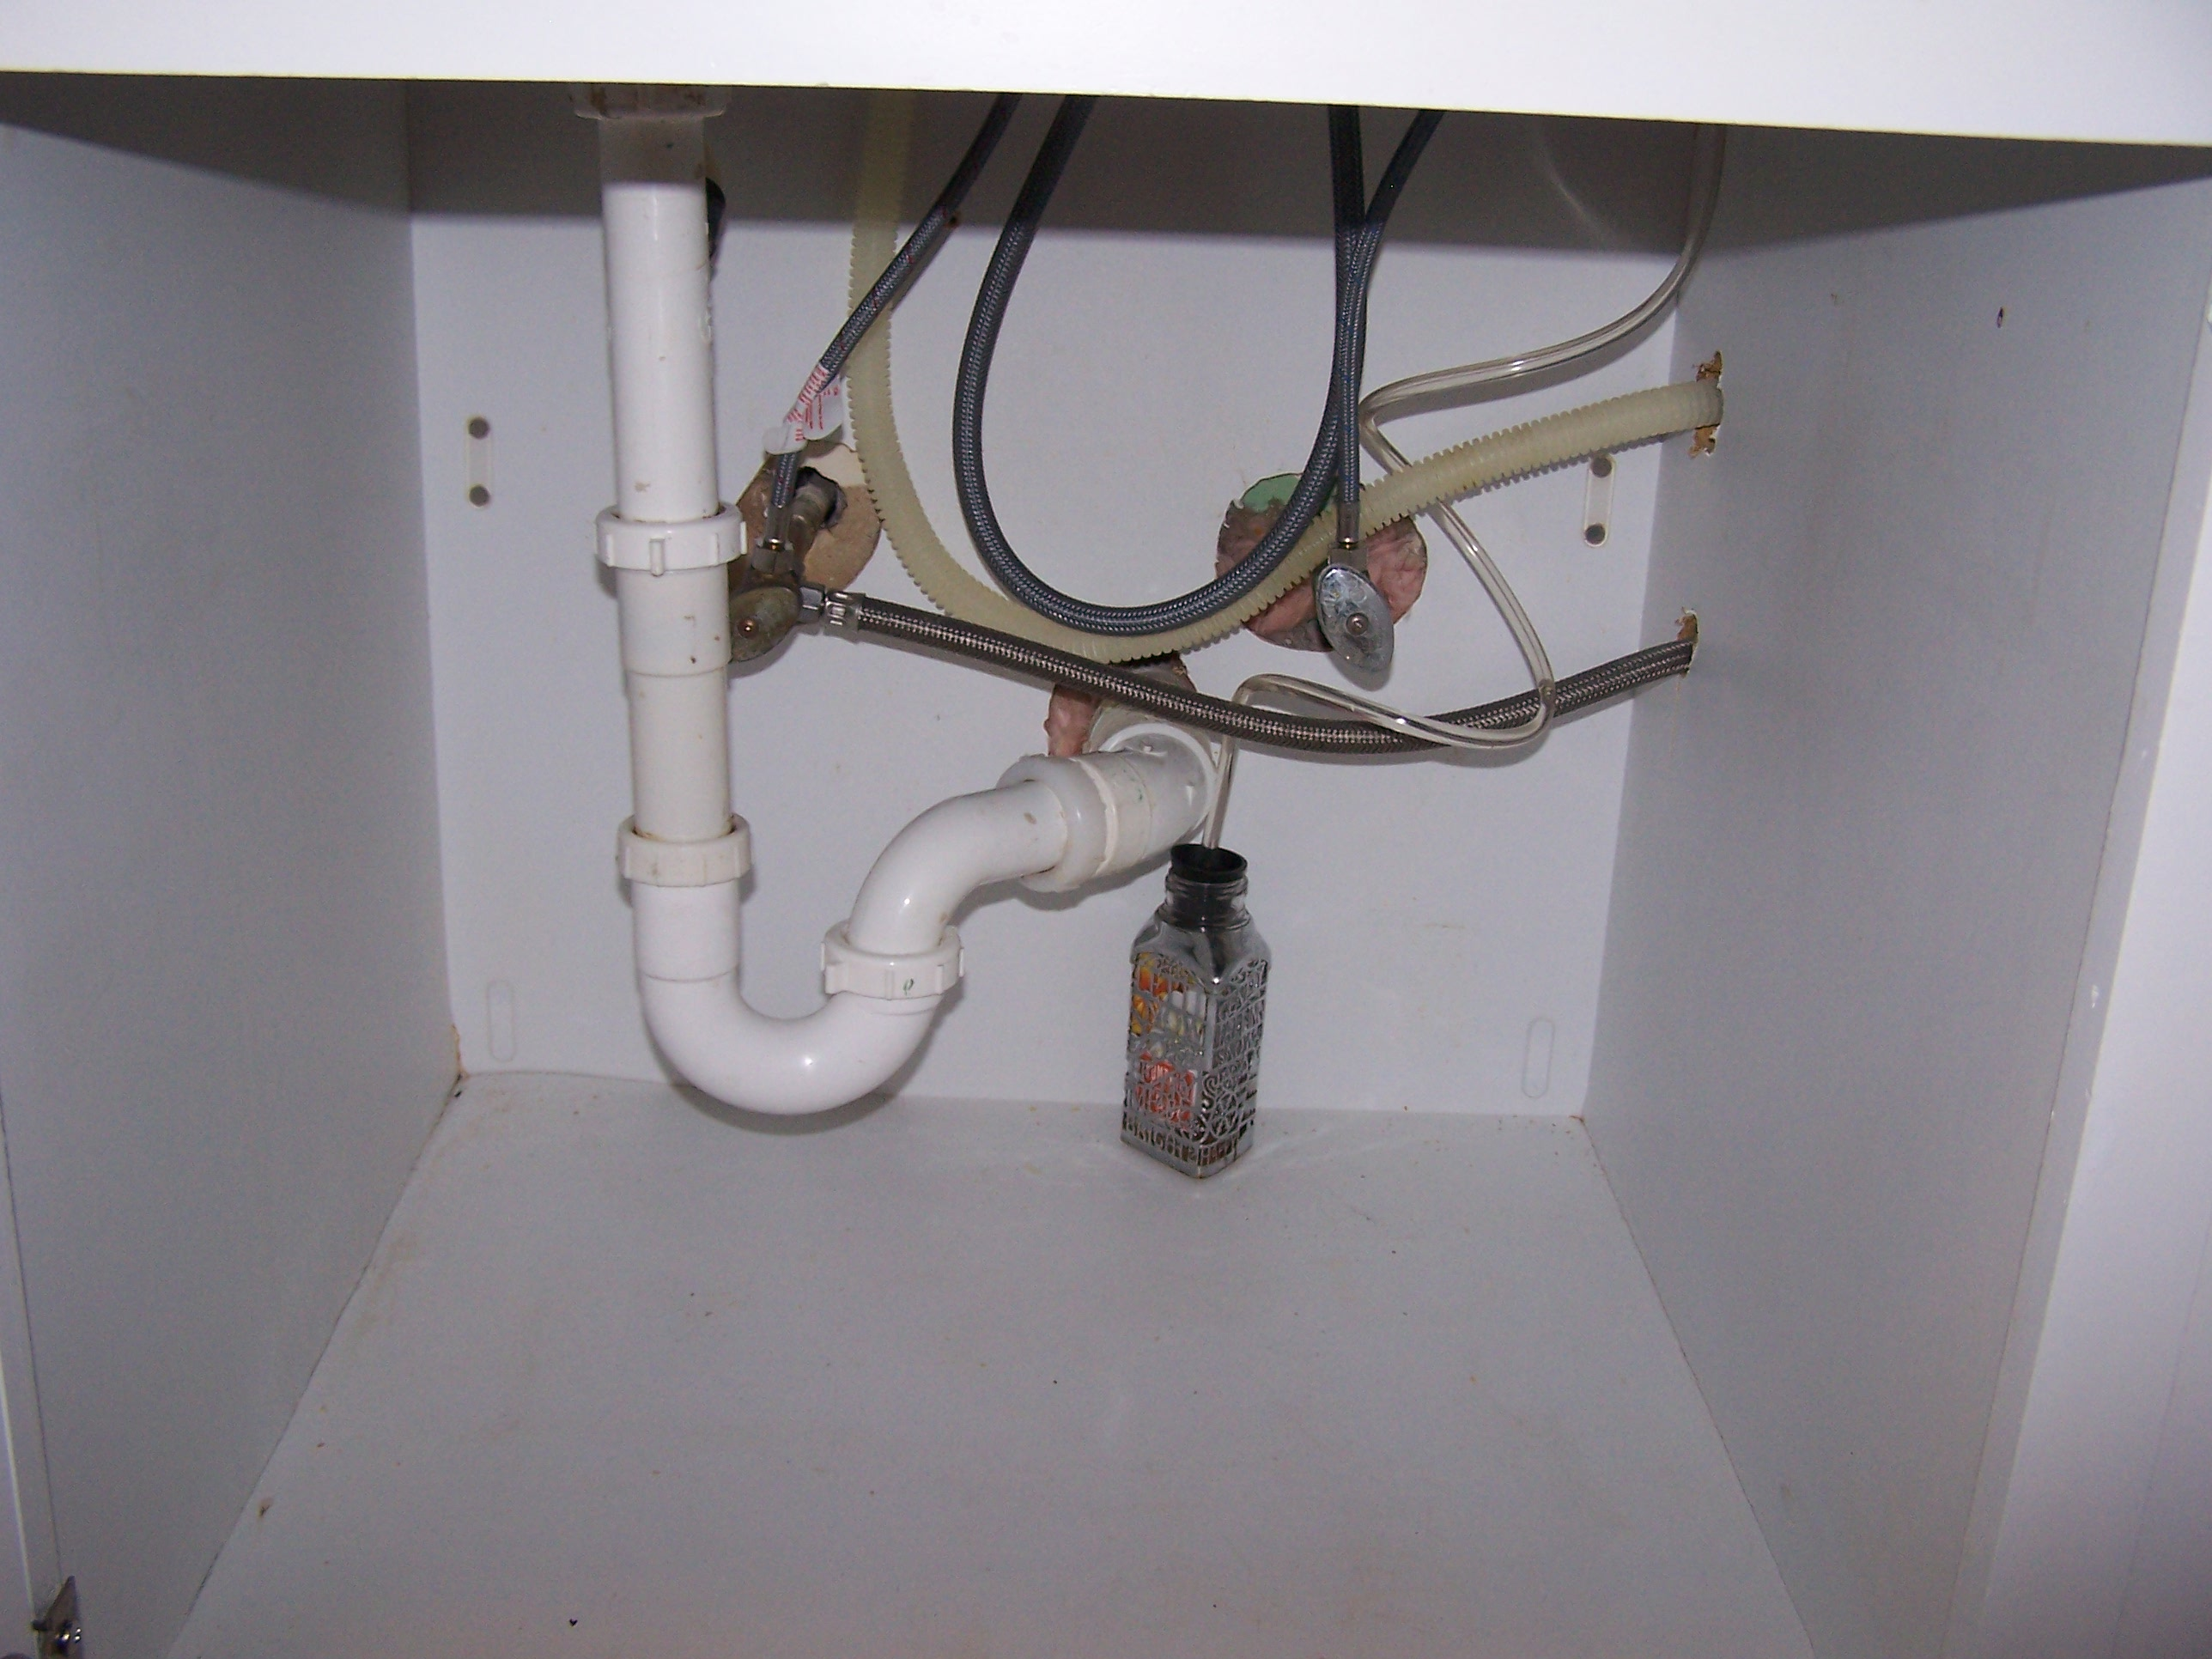 Kitchen Faucet Replacement STG style-100_1429.jpg